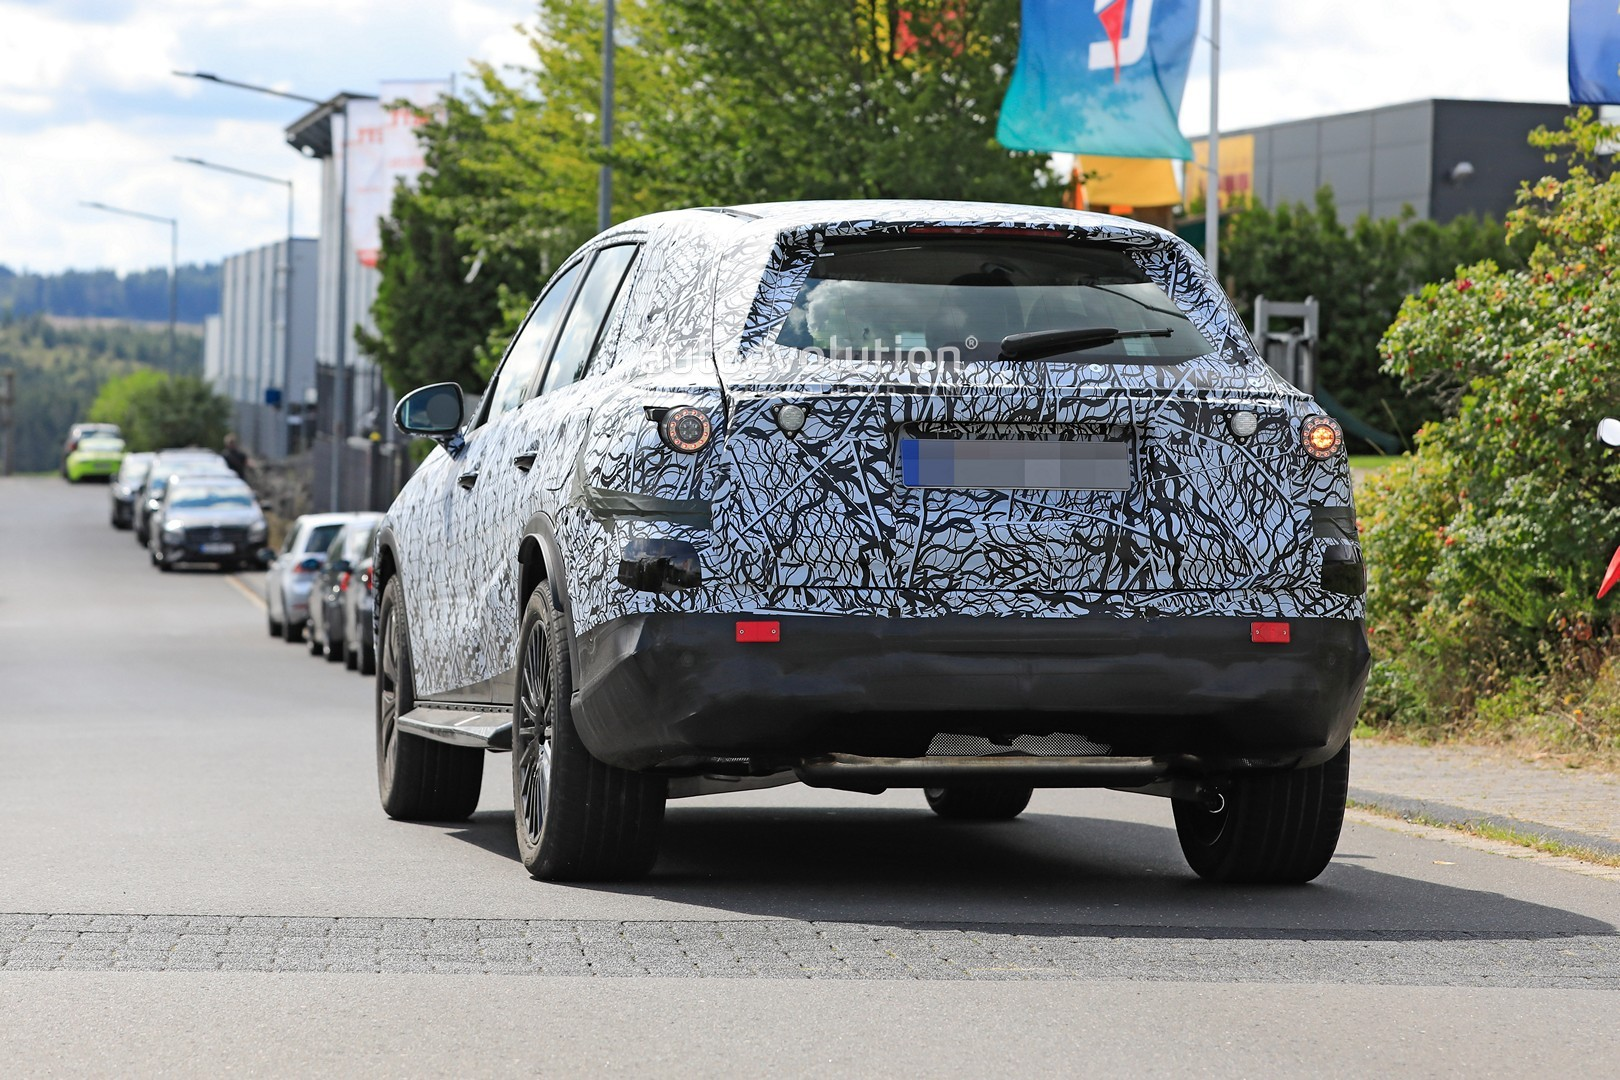 2021 - [Mercedes-Benz] GLC II - Page 2 All-new-2022-mercedes-glc-class-spied-getting-to-be-the-king-of-cuvs_22